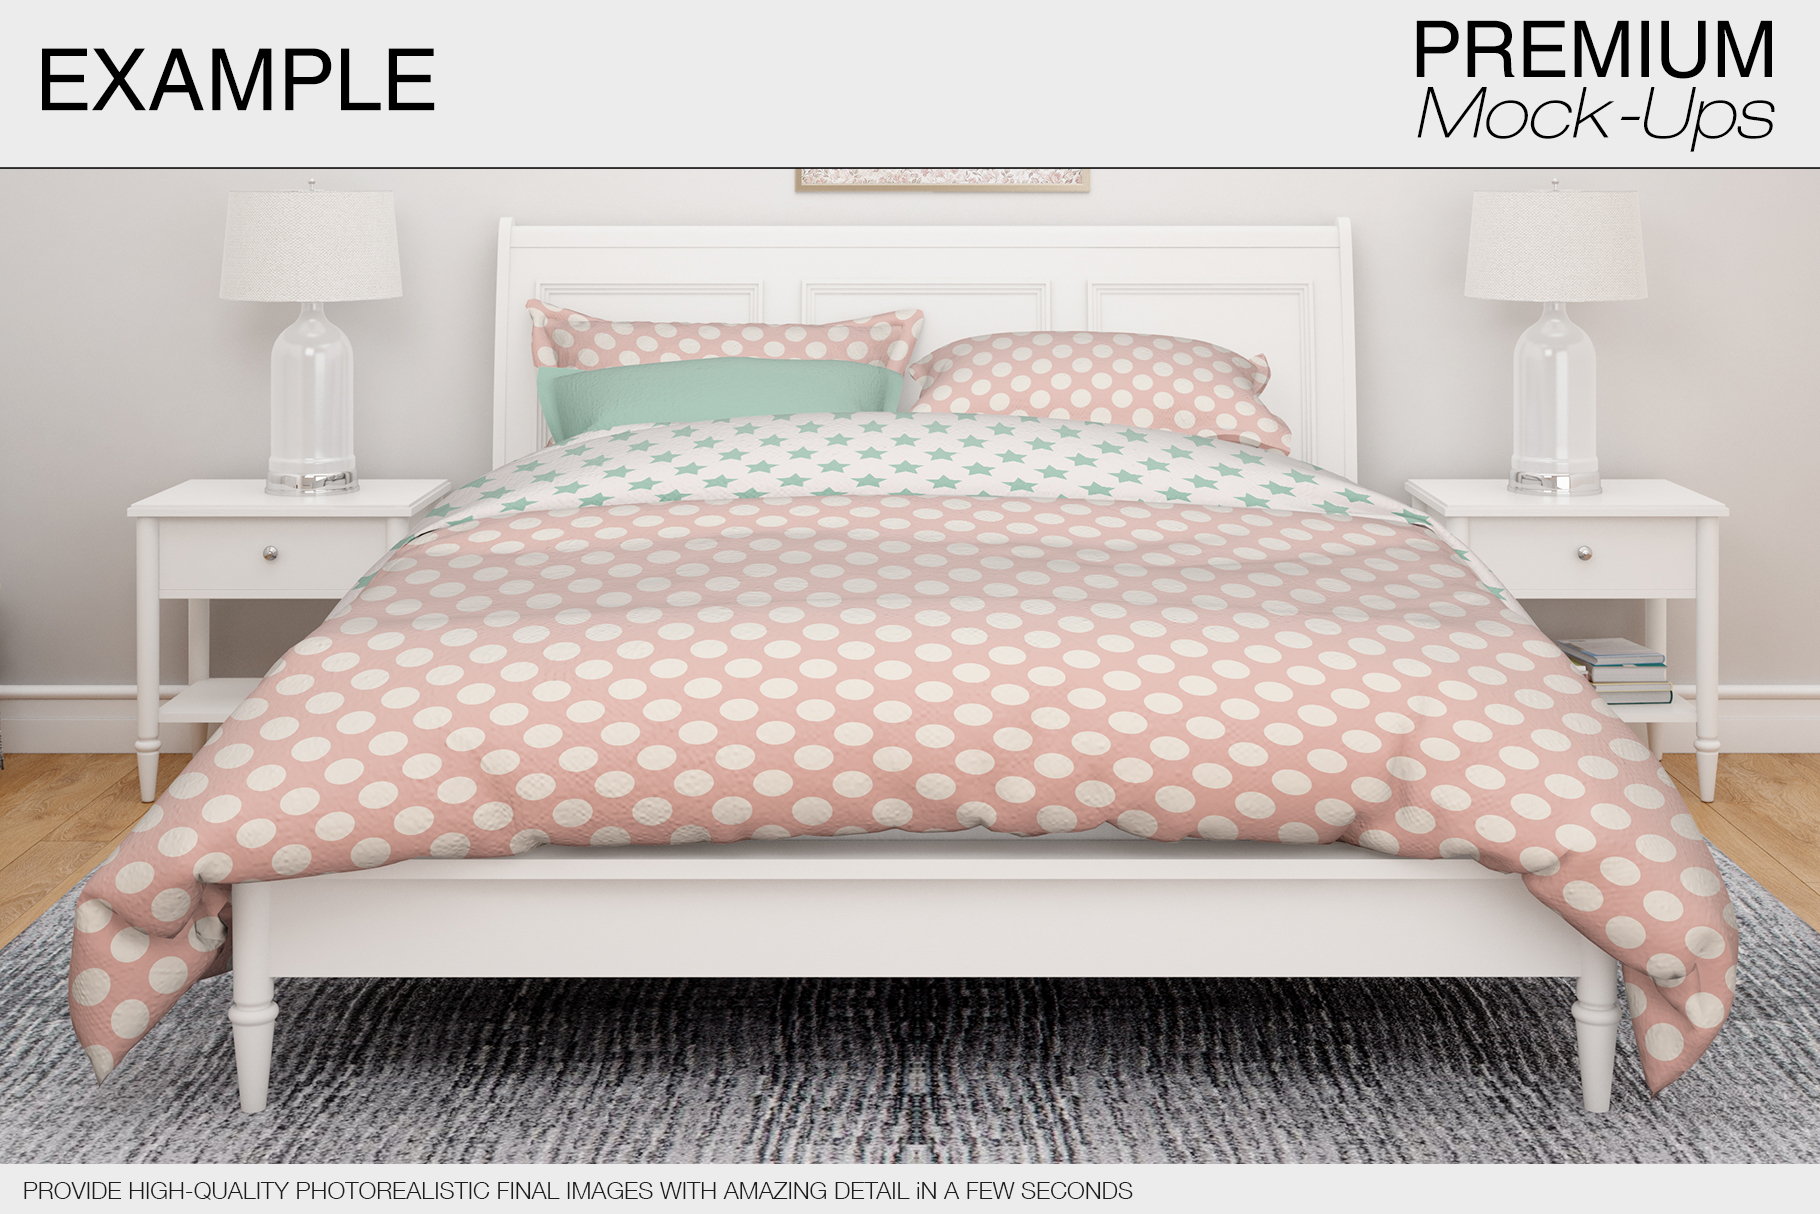 Bedding Set example image 6